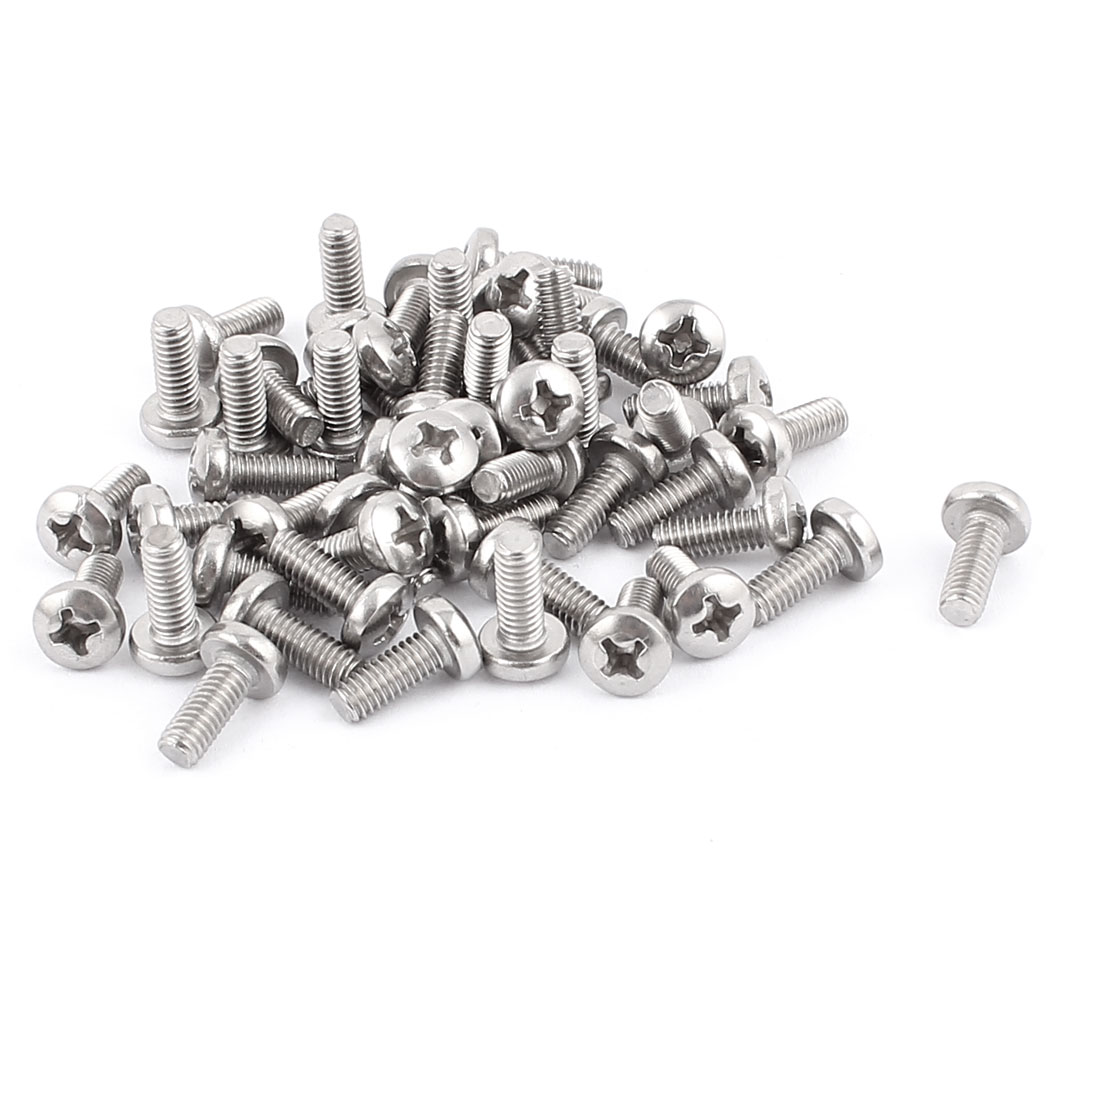 M4x10mm Thread Round Cap Phillips Screw Bolt Fasteners 50pcs